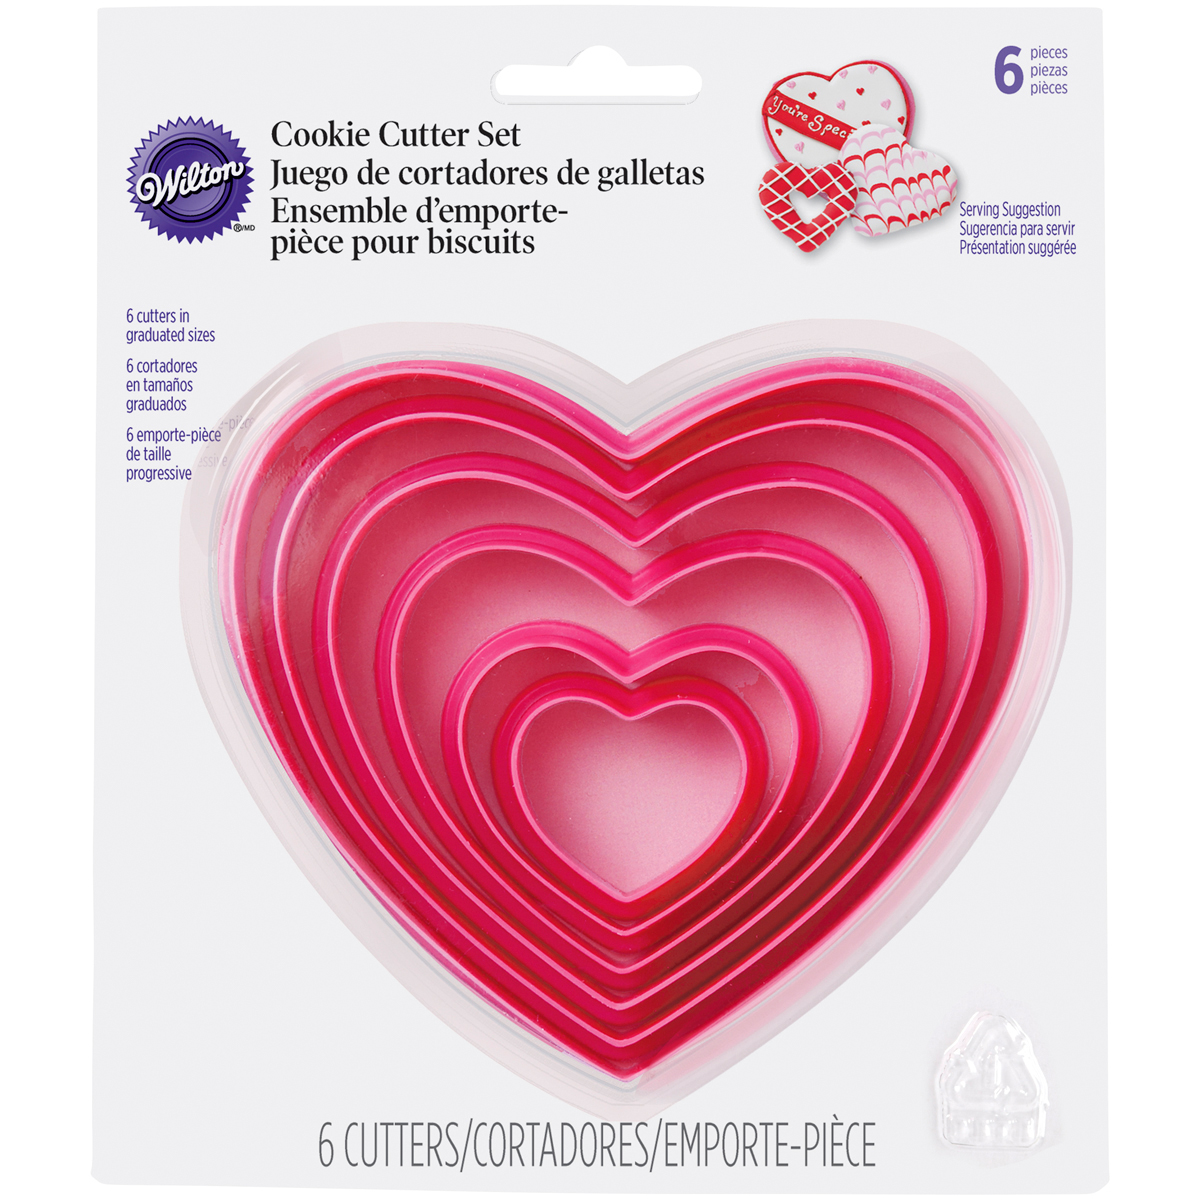 Nesting Cookie Cutter Set - Hearts